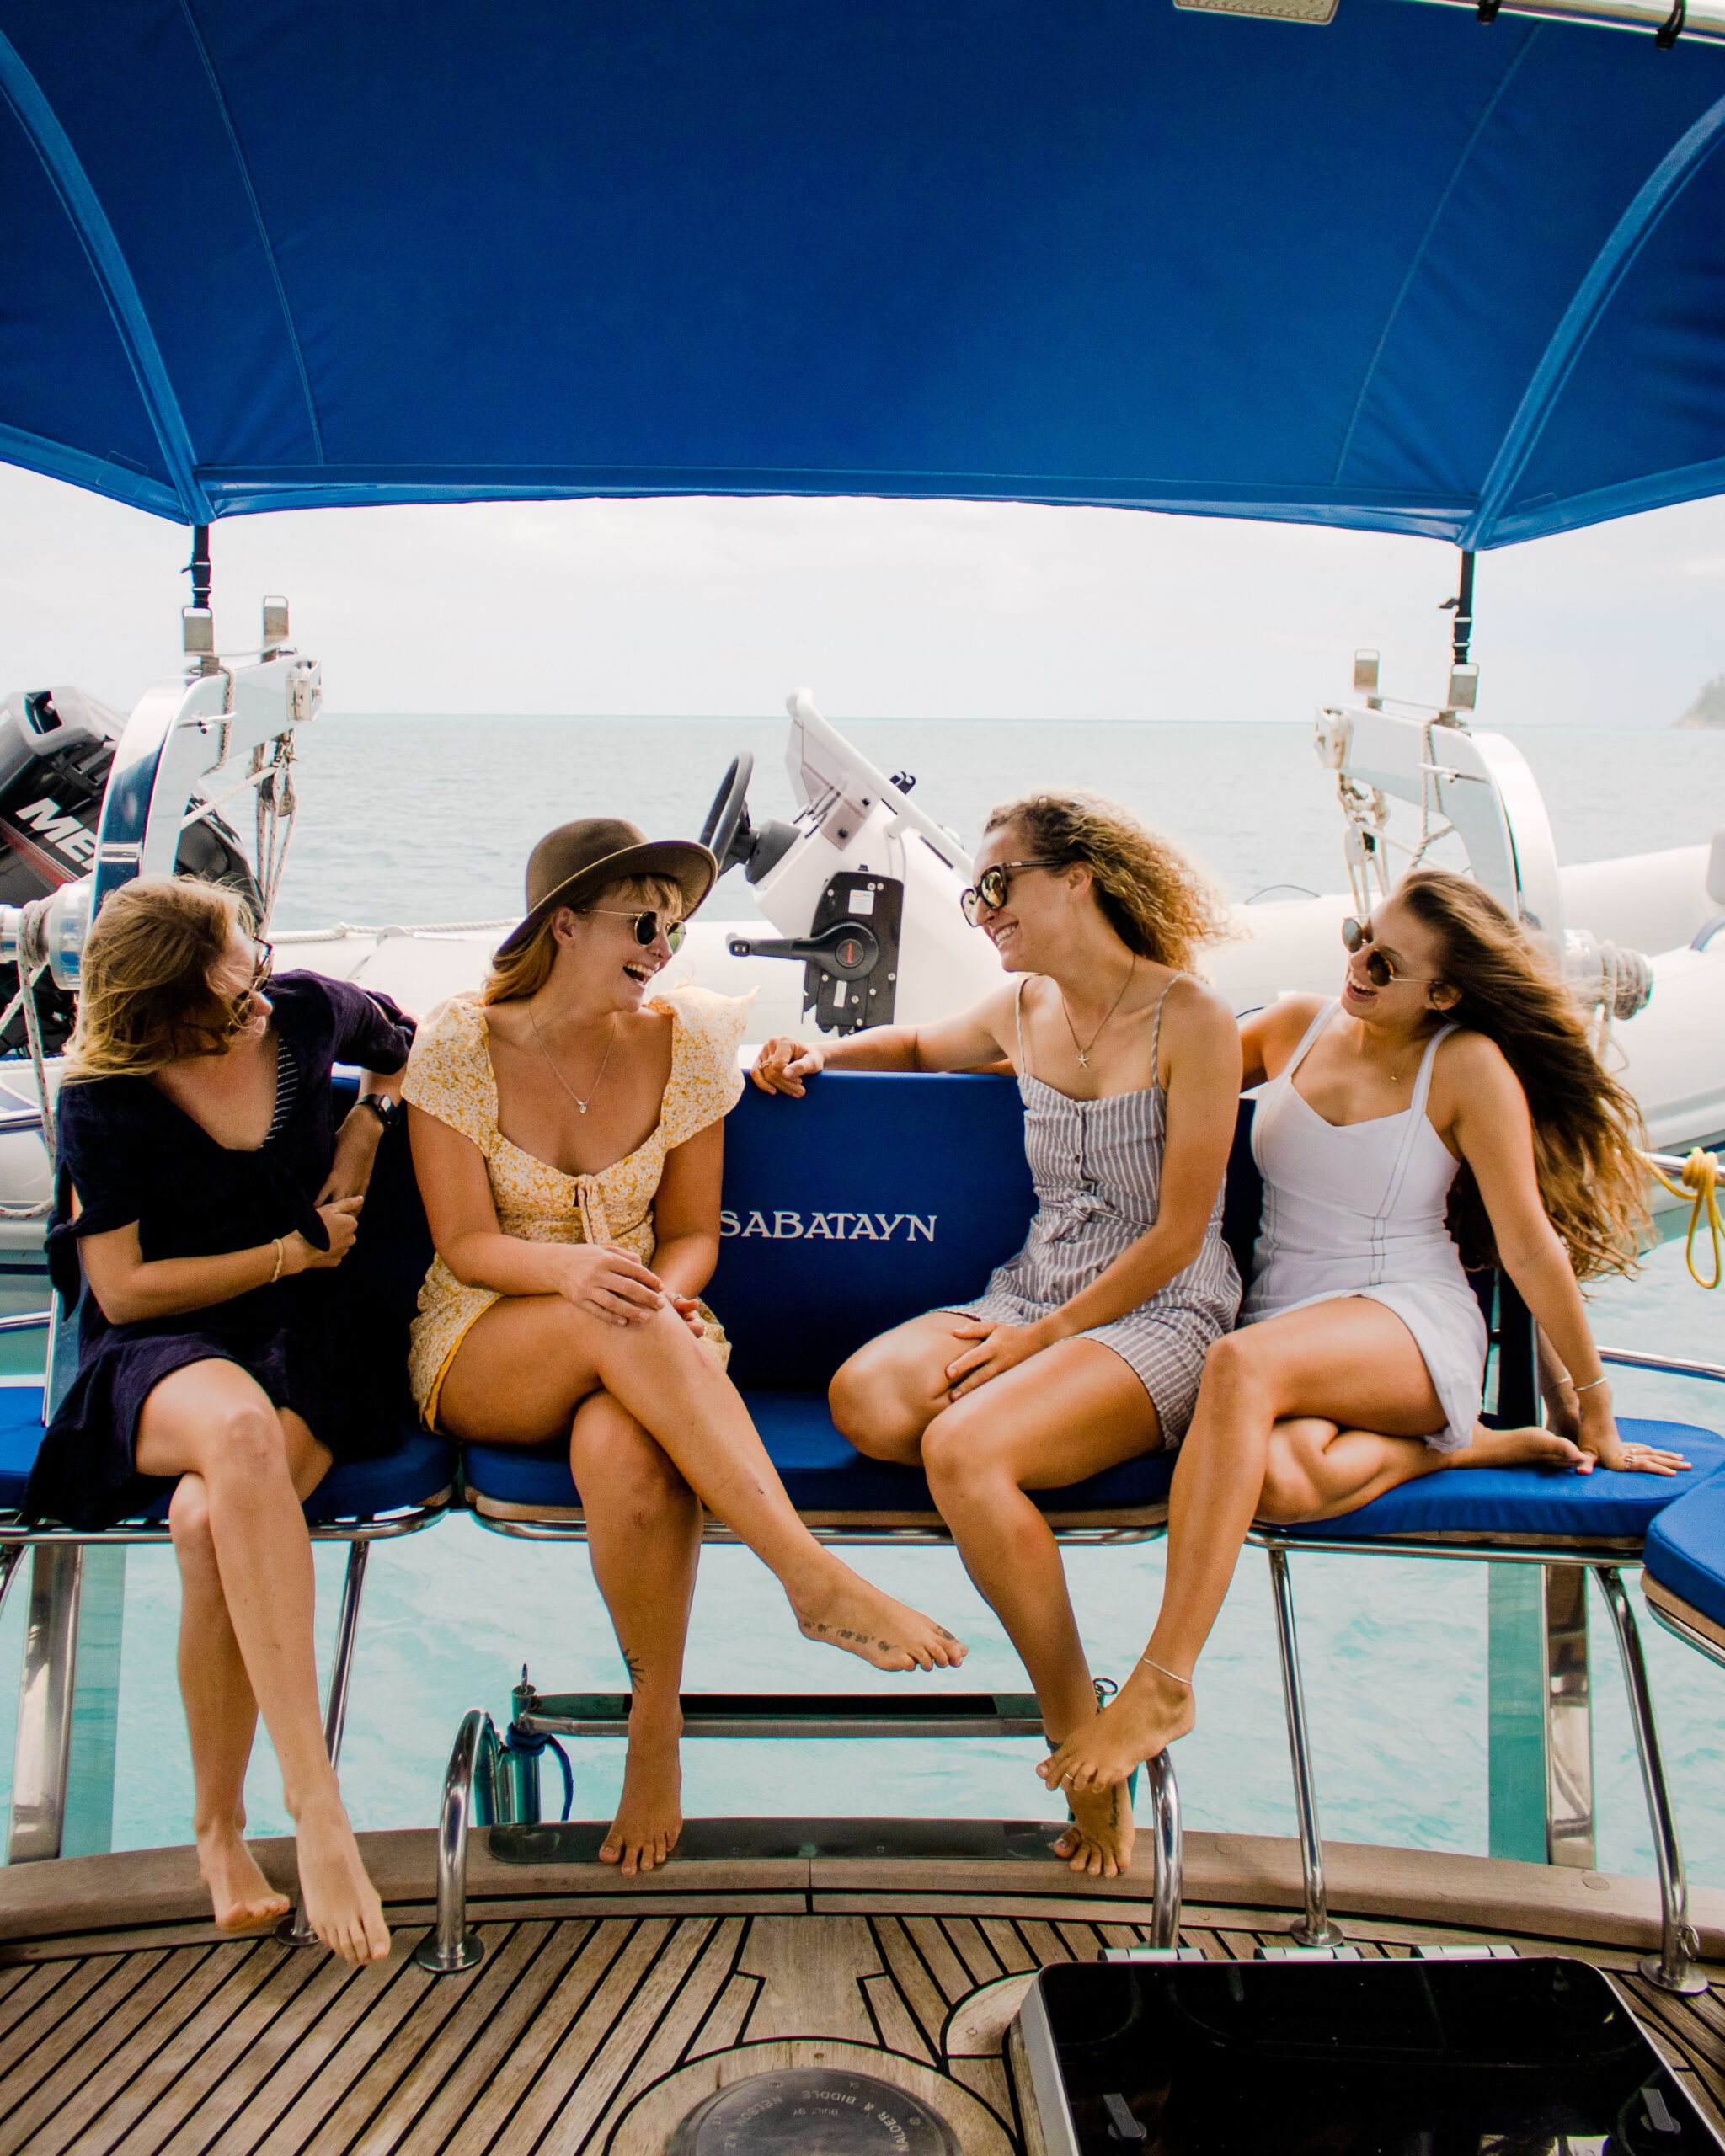 Day Trip to Langford Reef and either Blue Pearl Bay or Bali Hai